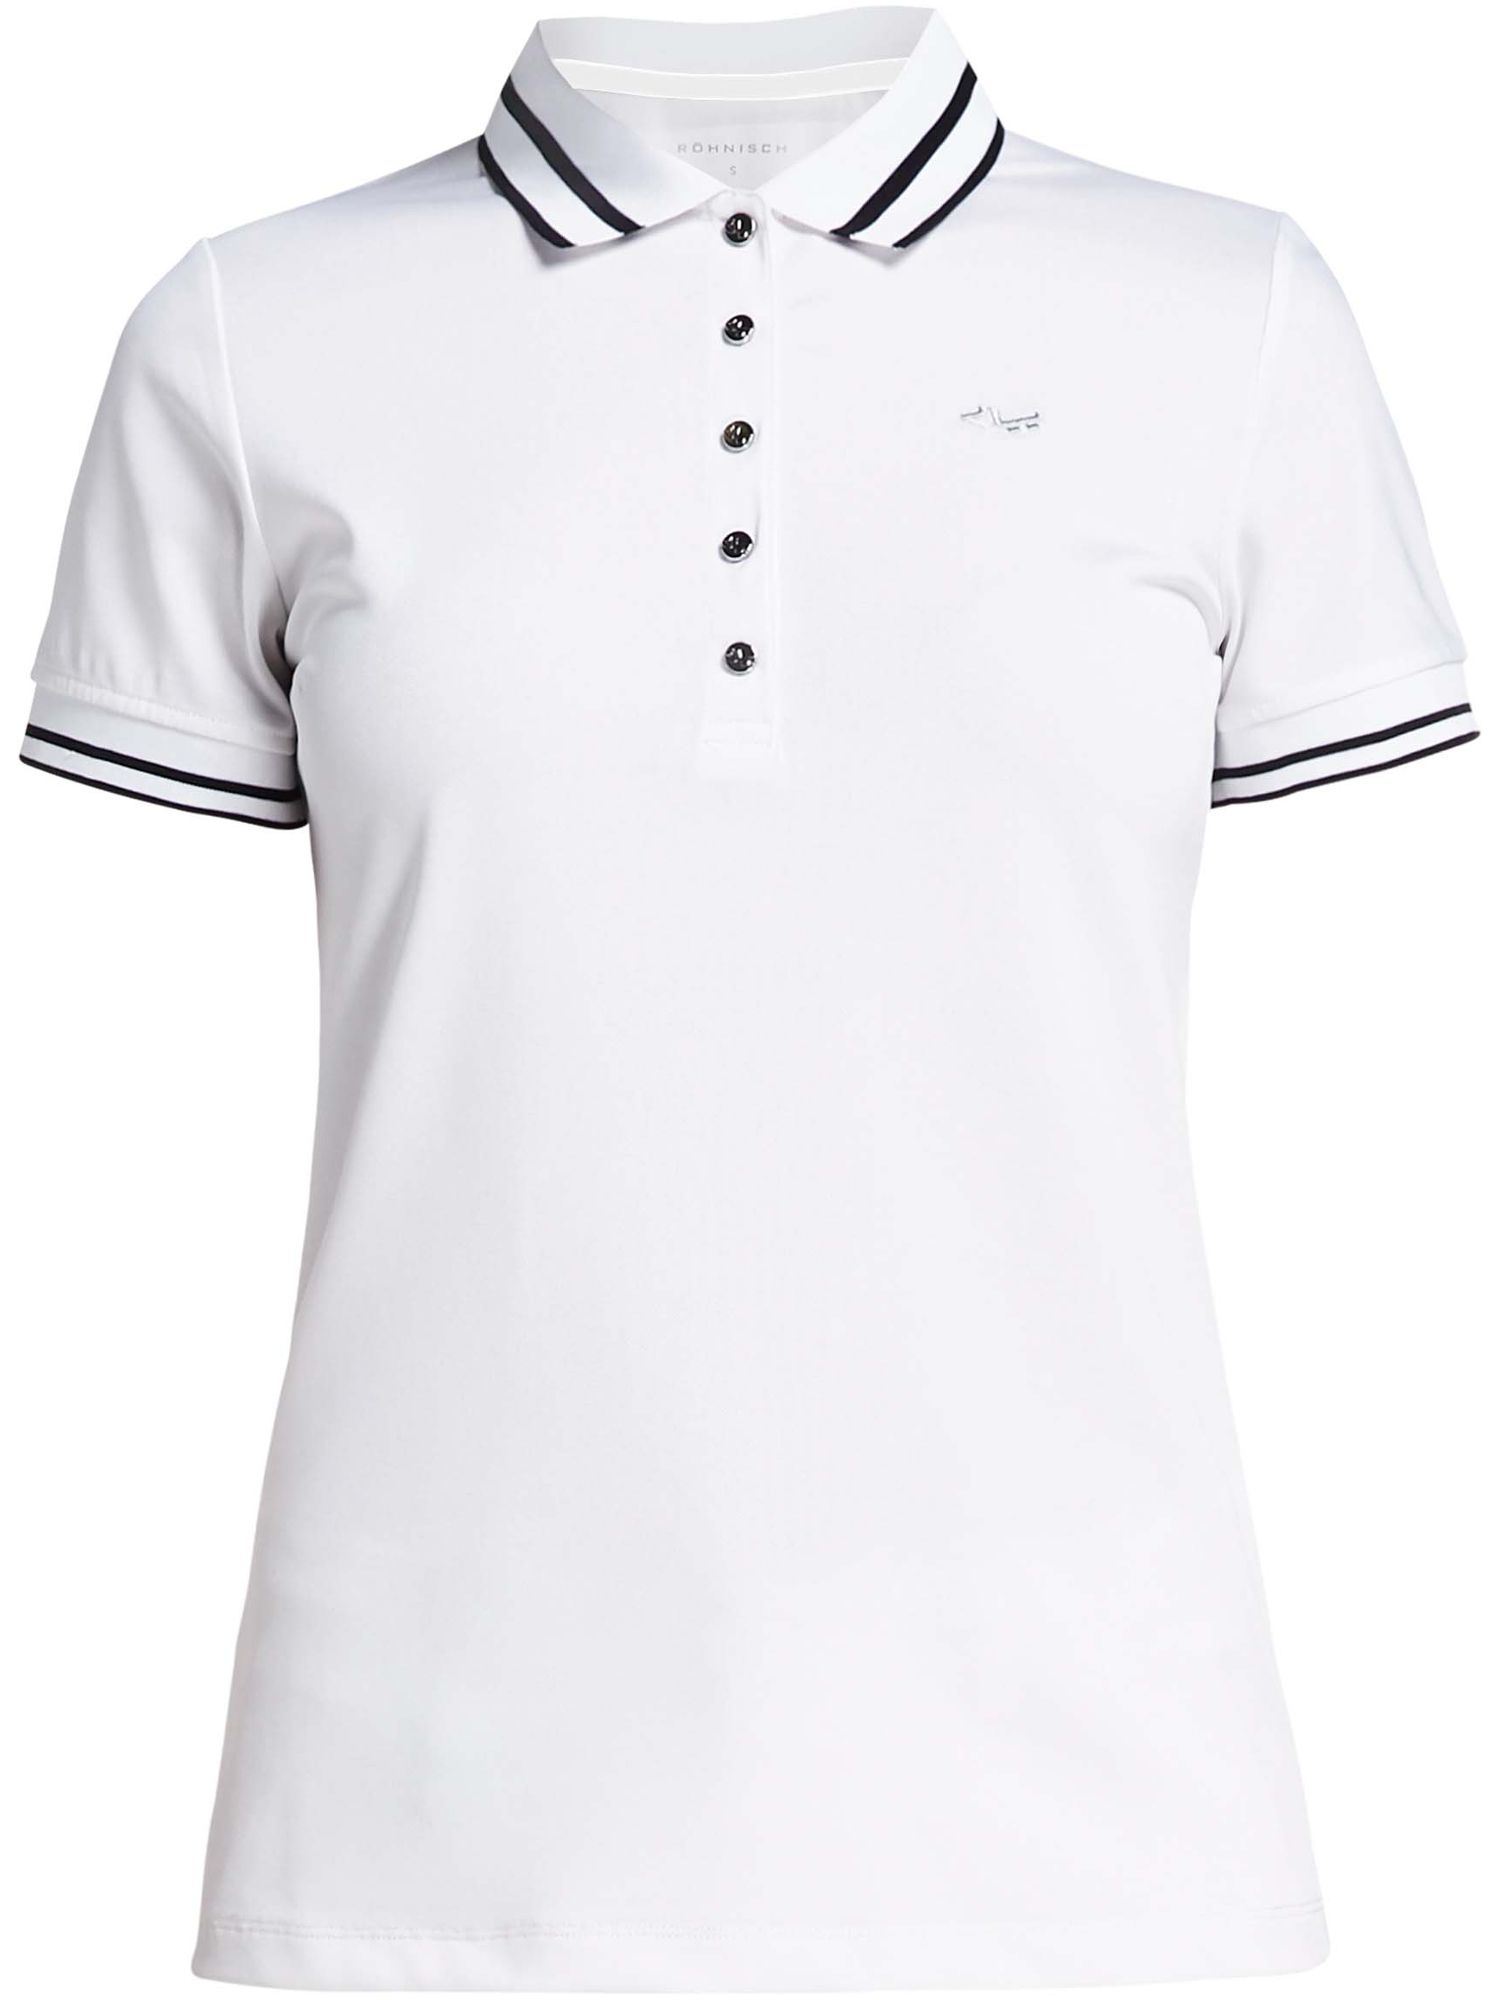 Rohnisch Pim Short Sleeved Polo, White